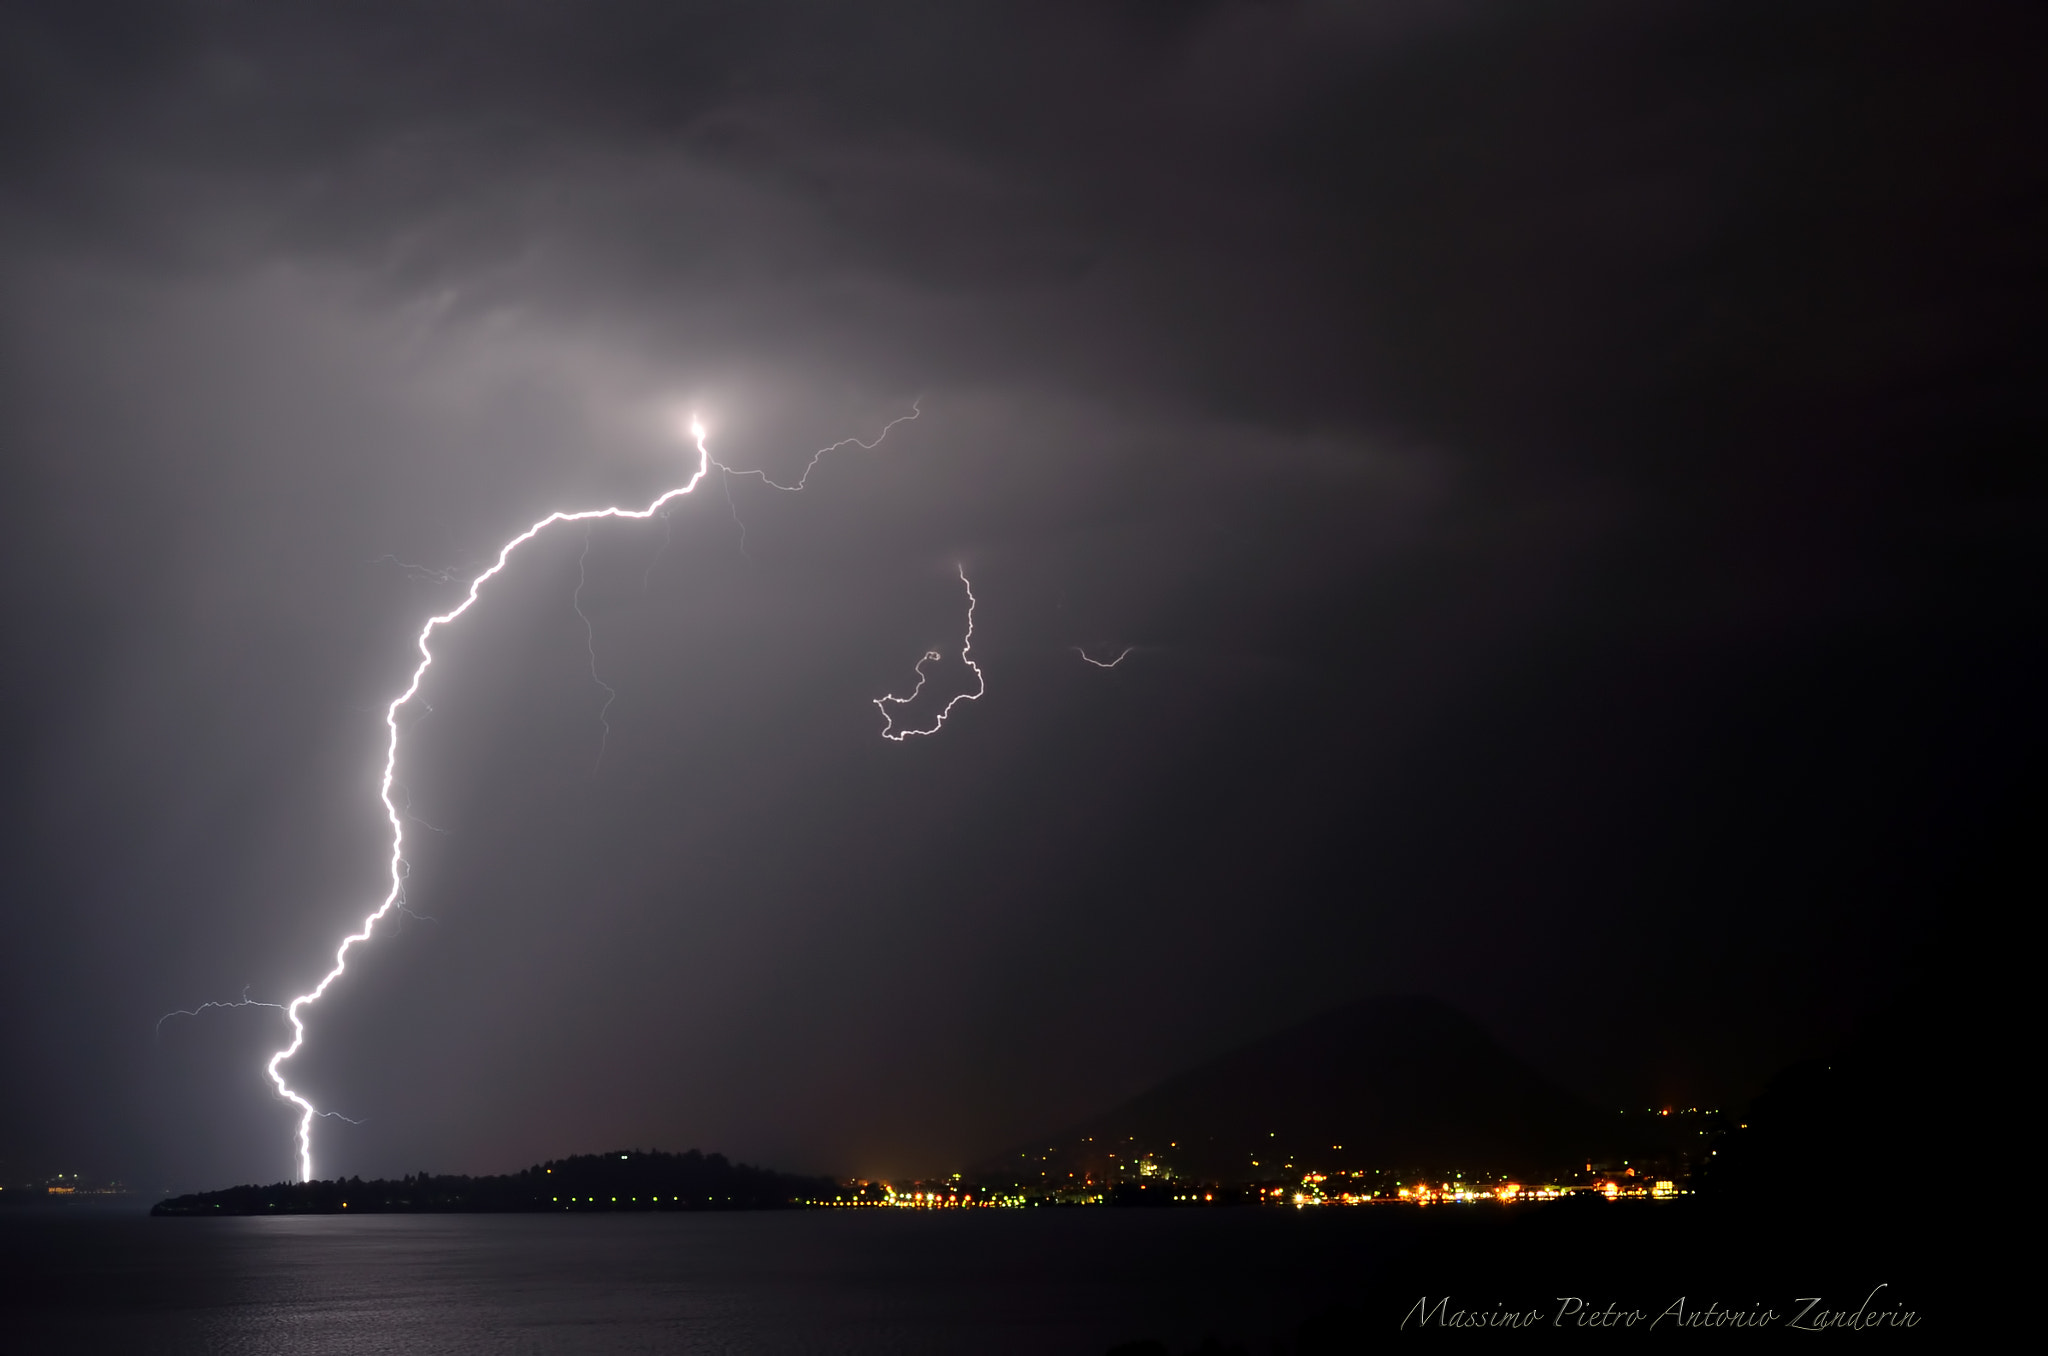 Photograph Lightning over the lake by Massimo Pietro Antonio Zanderin on 500px